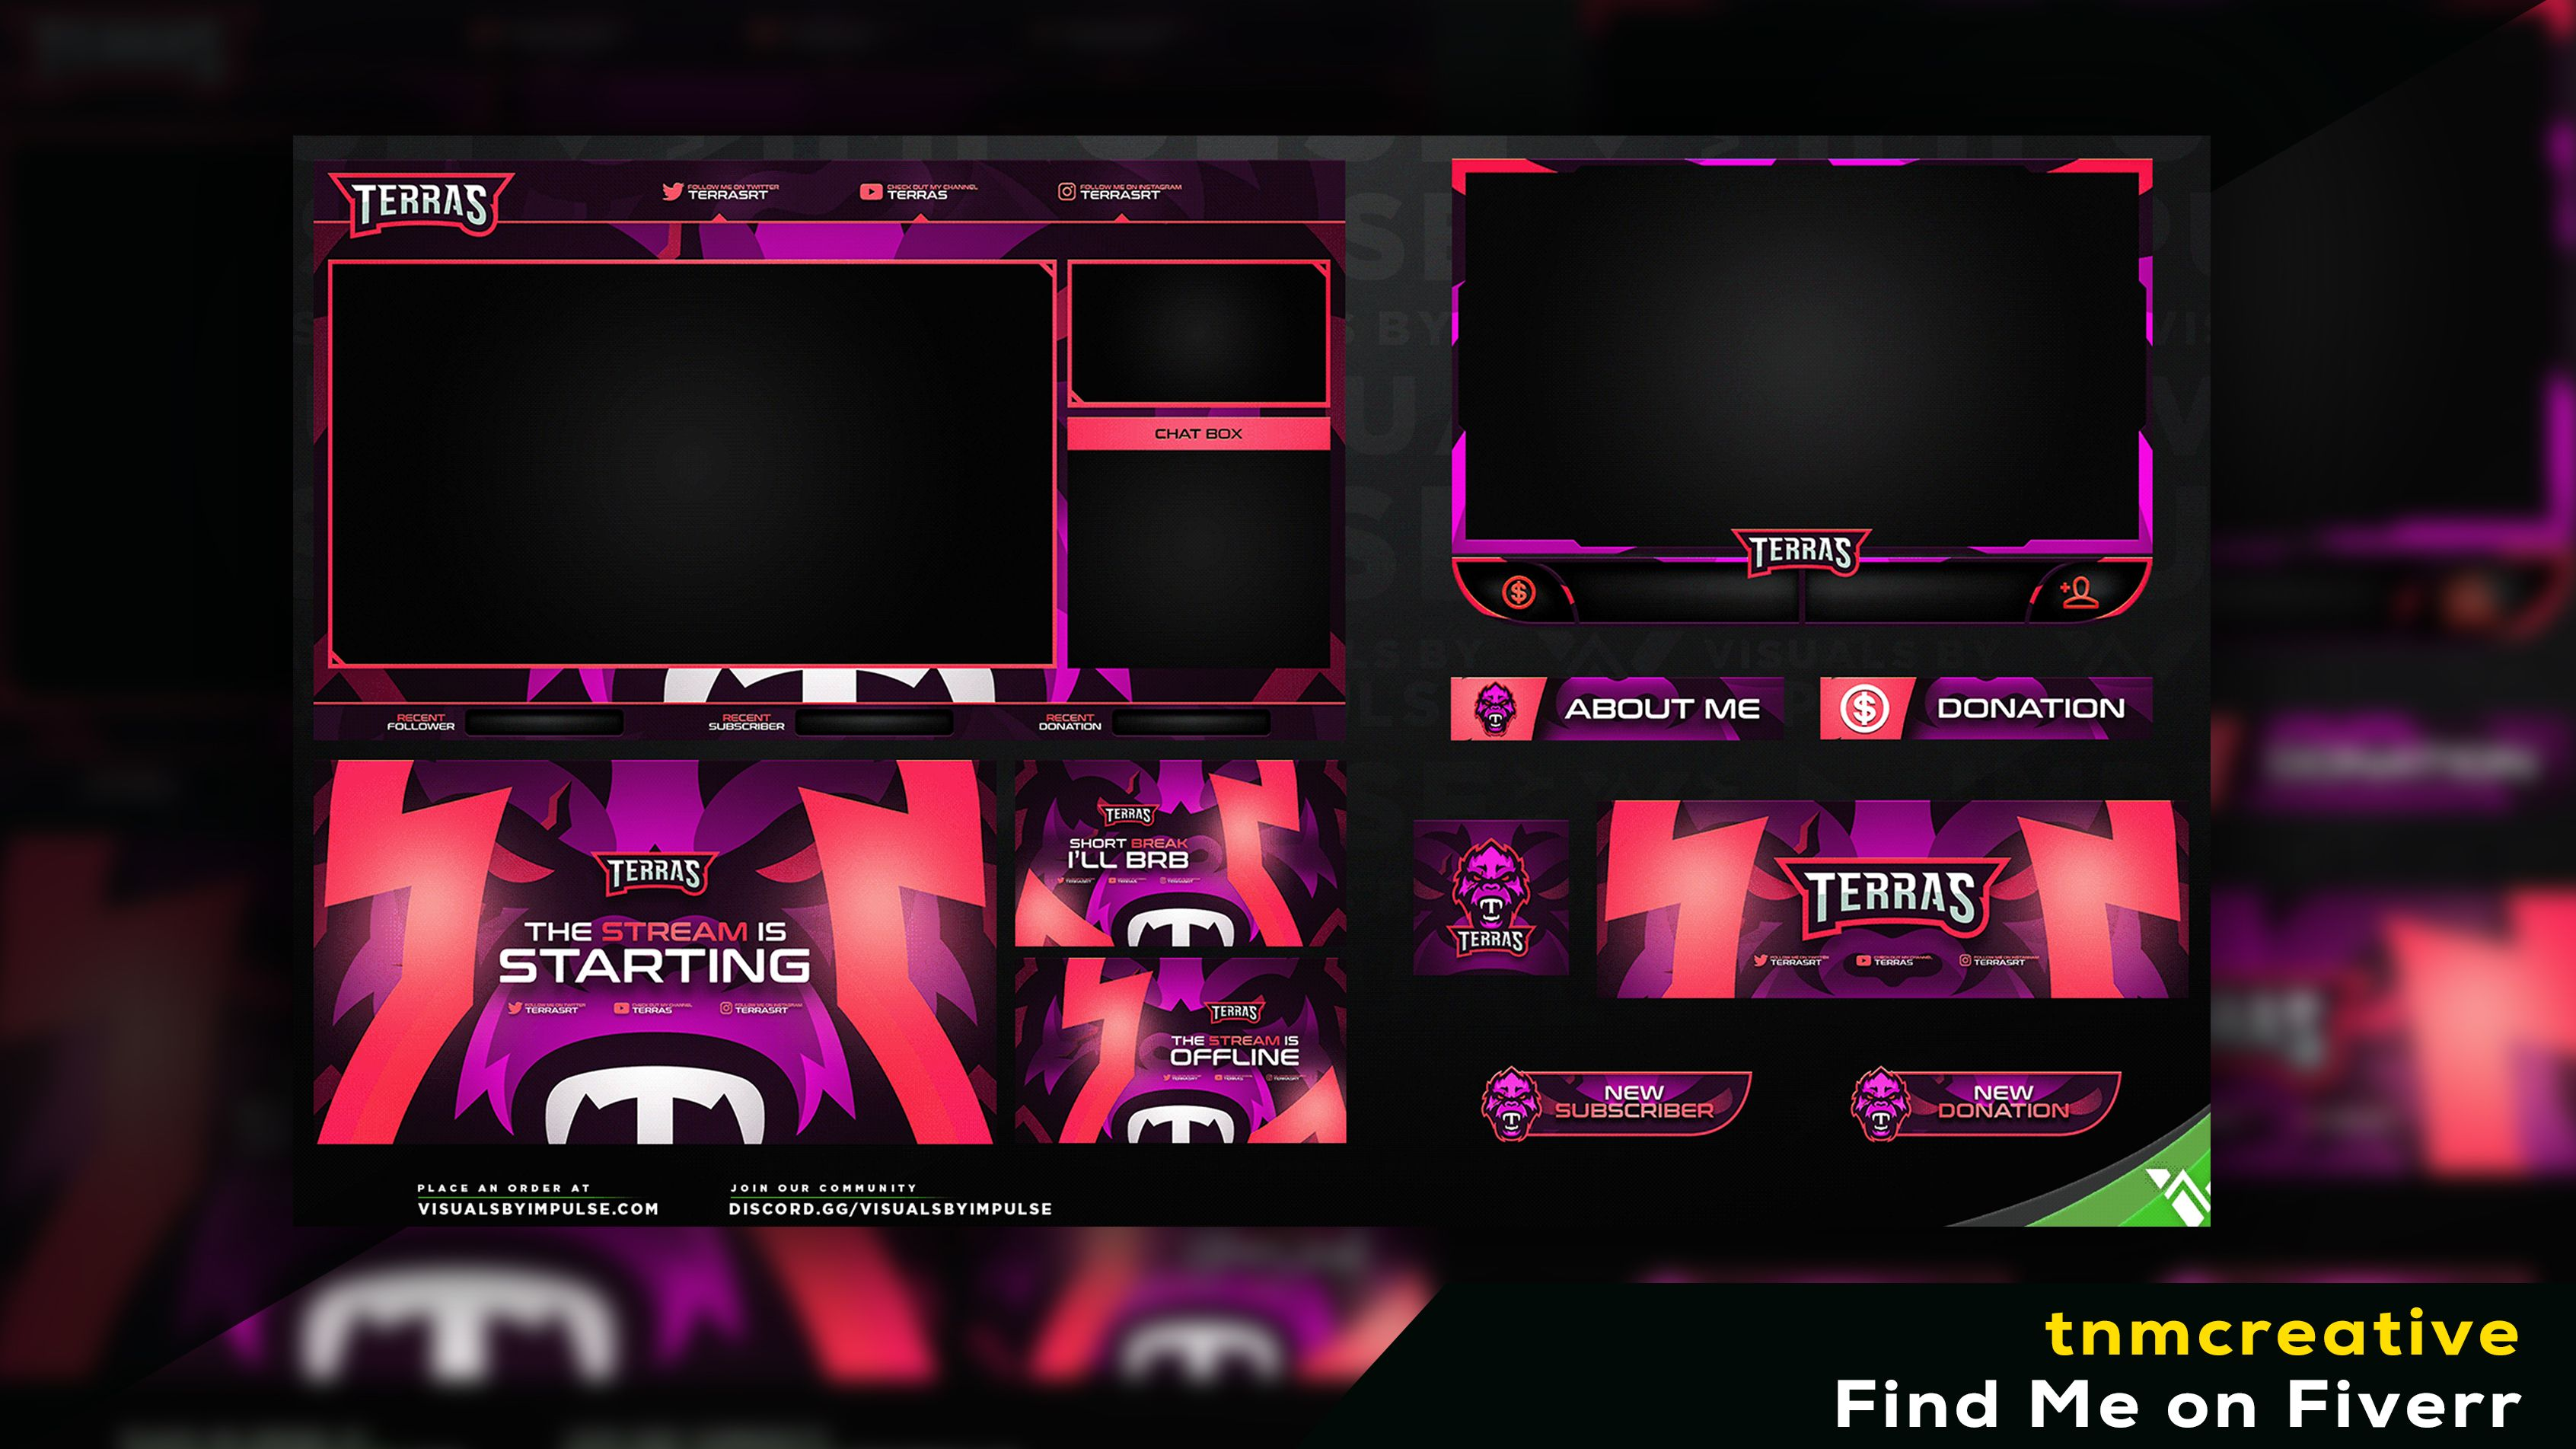 Twitch Overlay in 2020 Twitch, Overlays, Fiverr